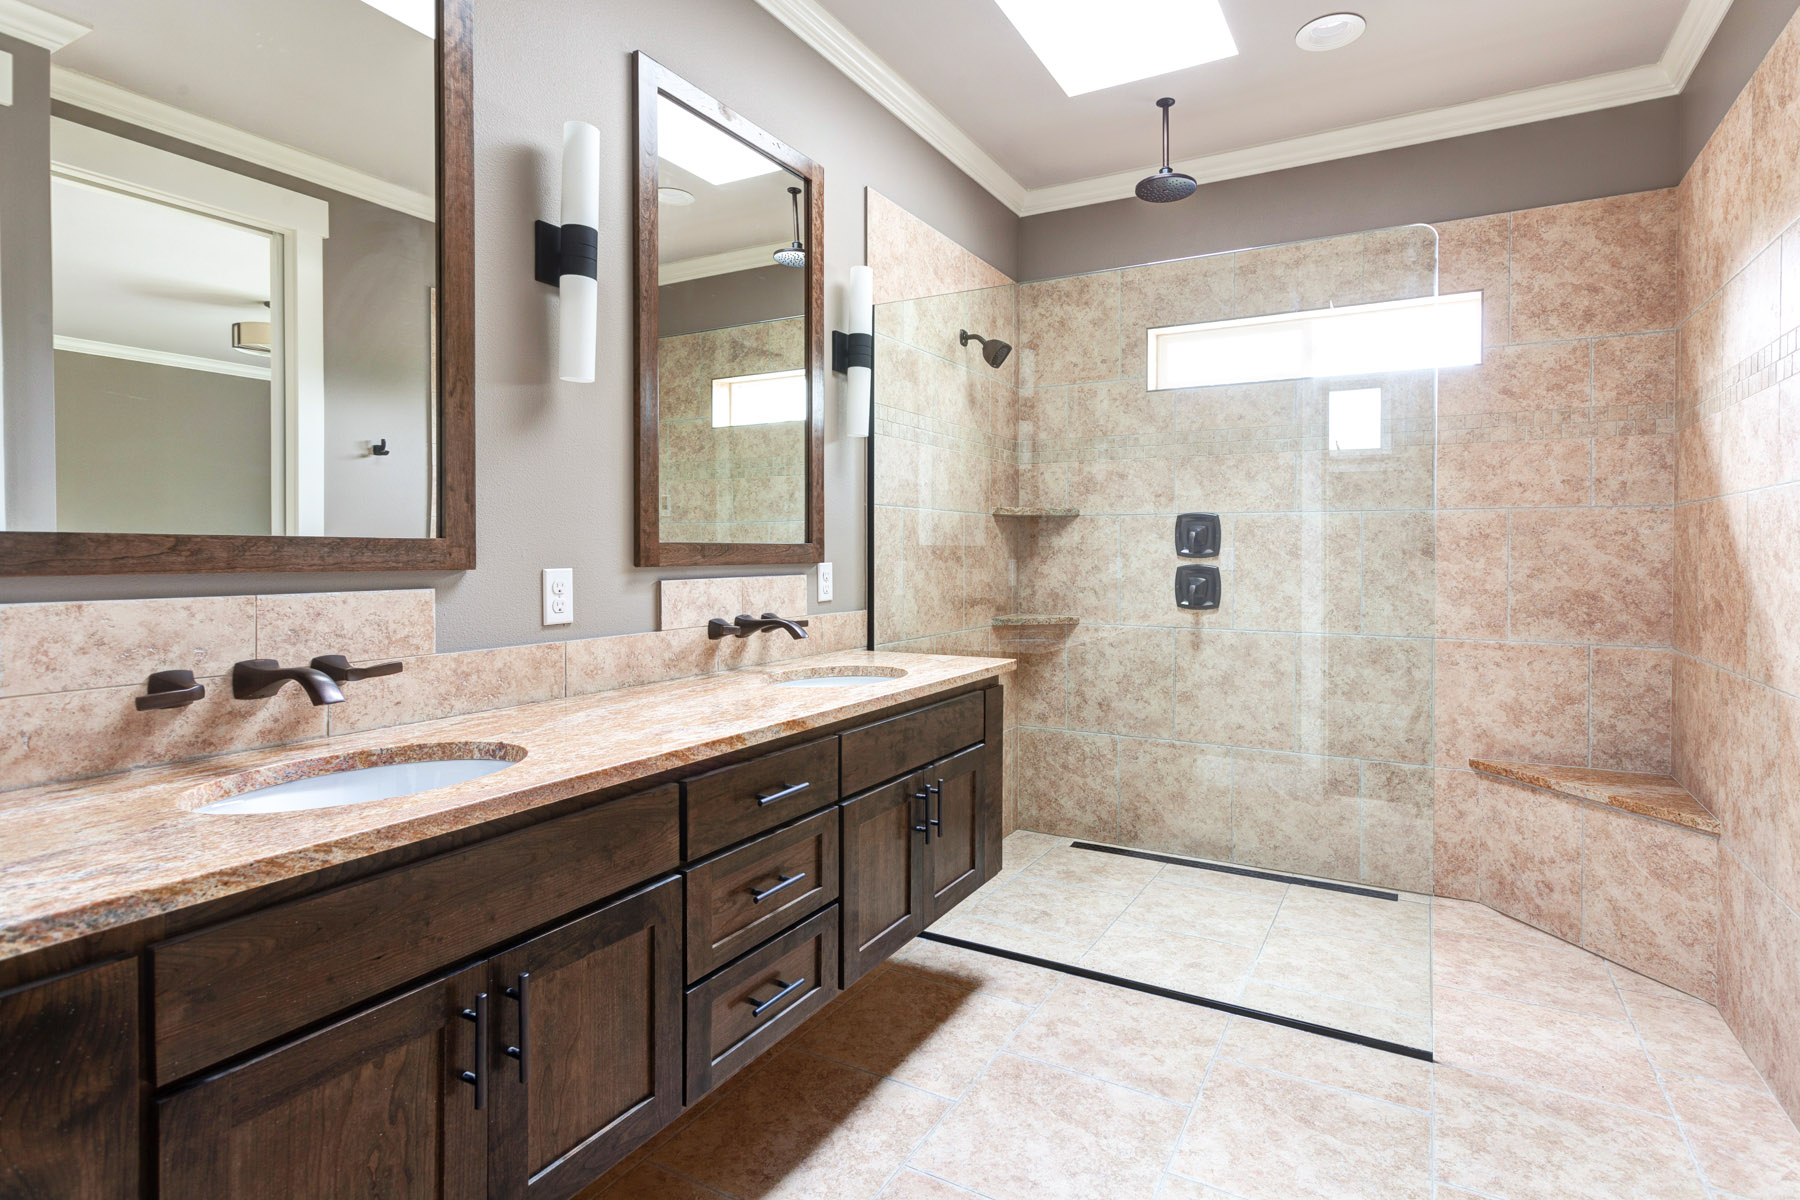 Full custom bathroom with heated floor and rain shower